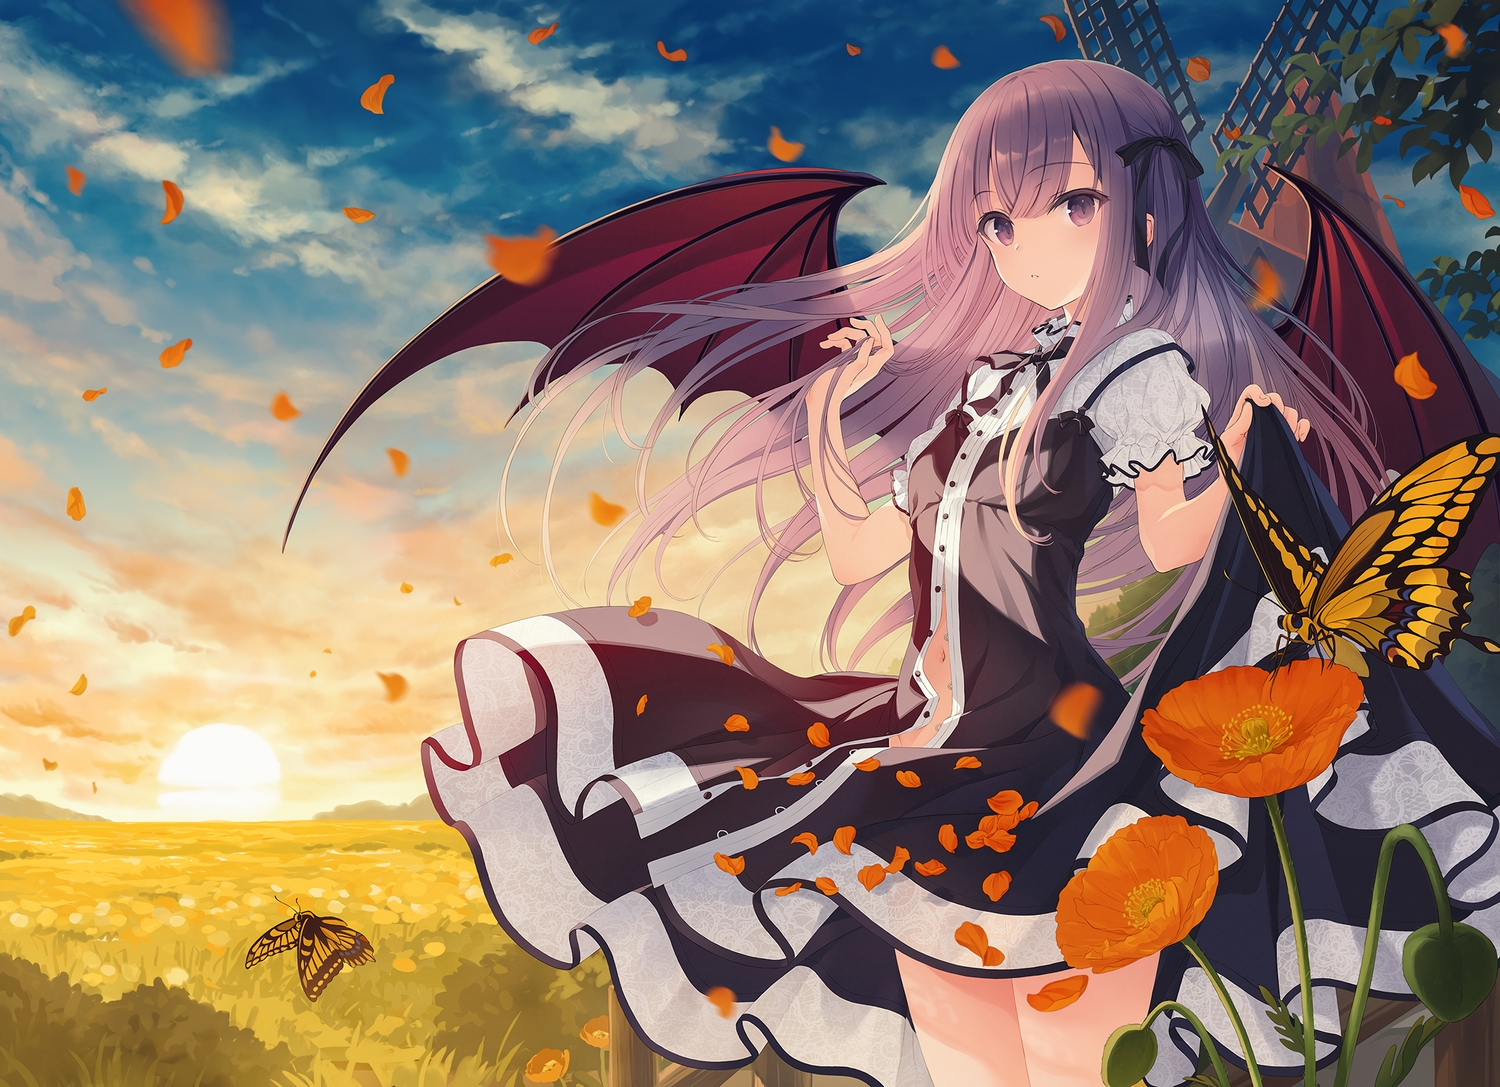 butterfly clouds demon dress flowers grass long_hair navel original purple_eyes purple_hair sky sunset windmill wings yashiro_seika